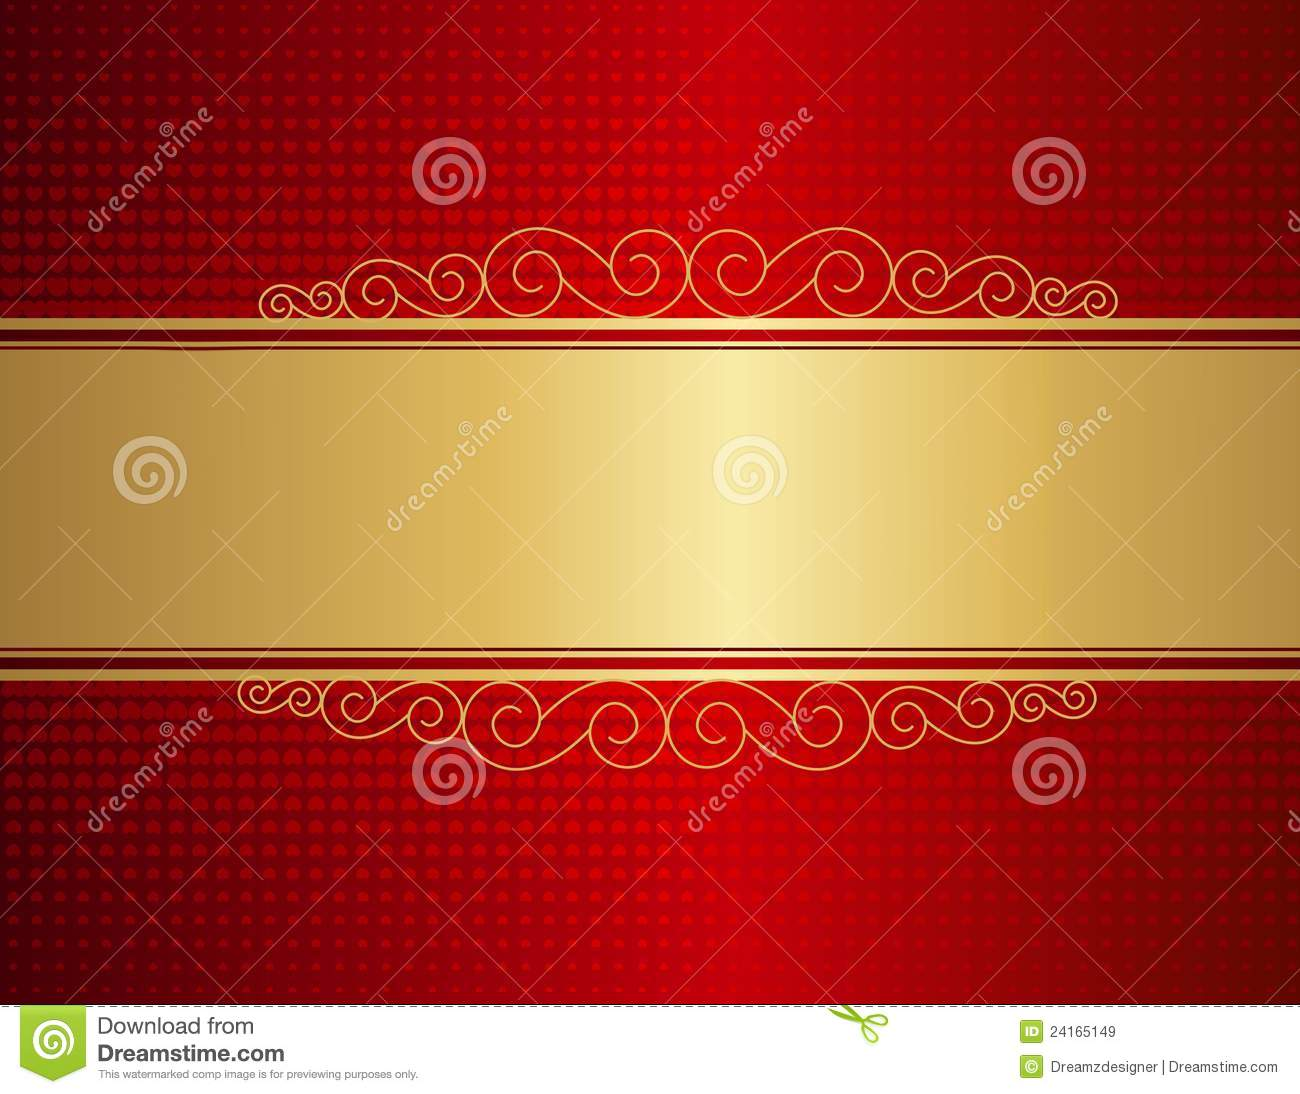 Wedding Invitation Background Stock Vector - Illustration of empty ...